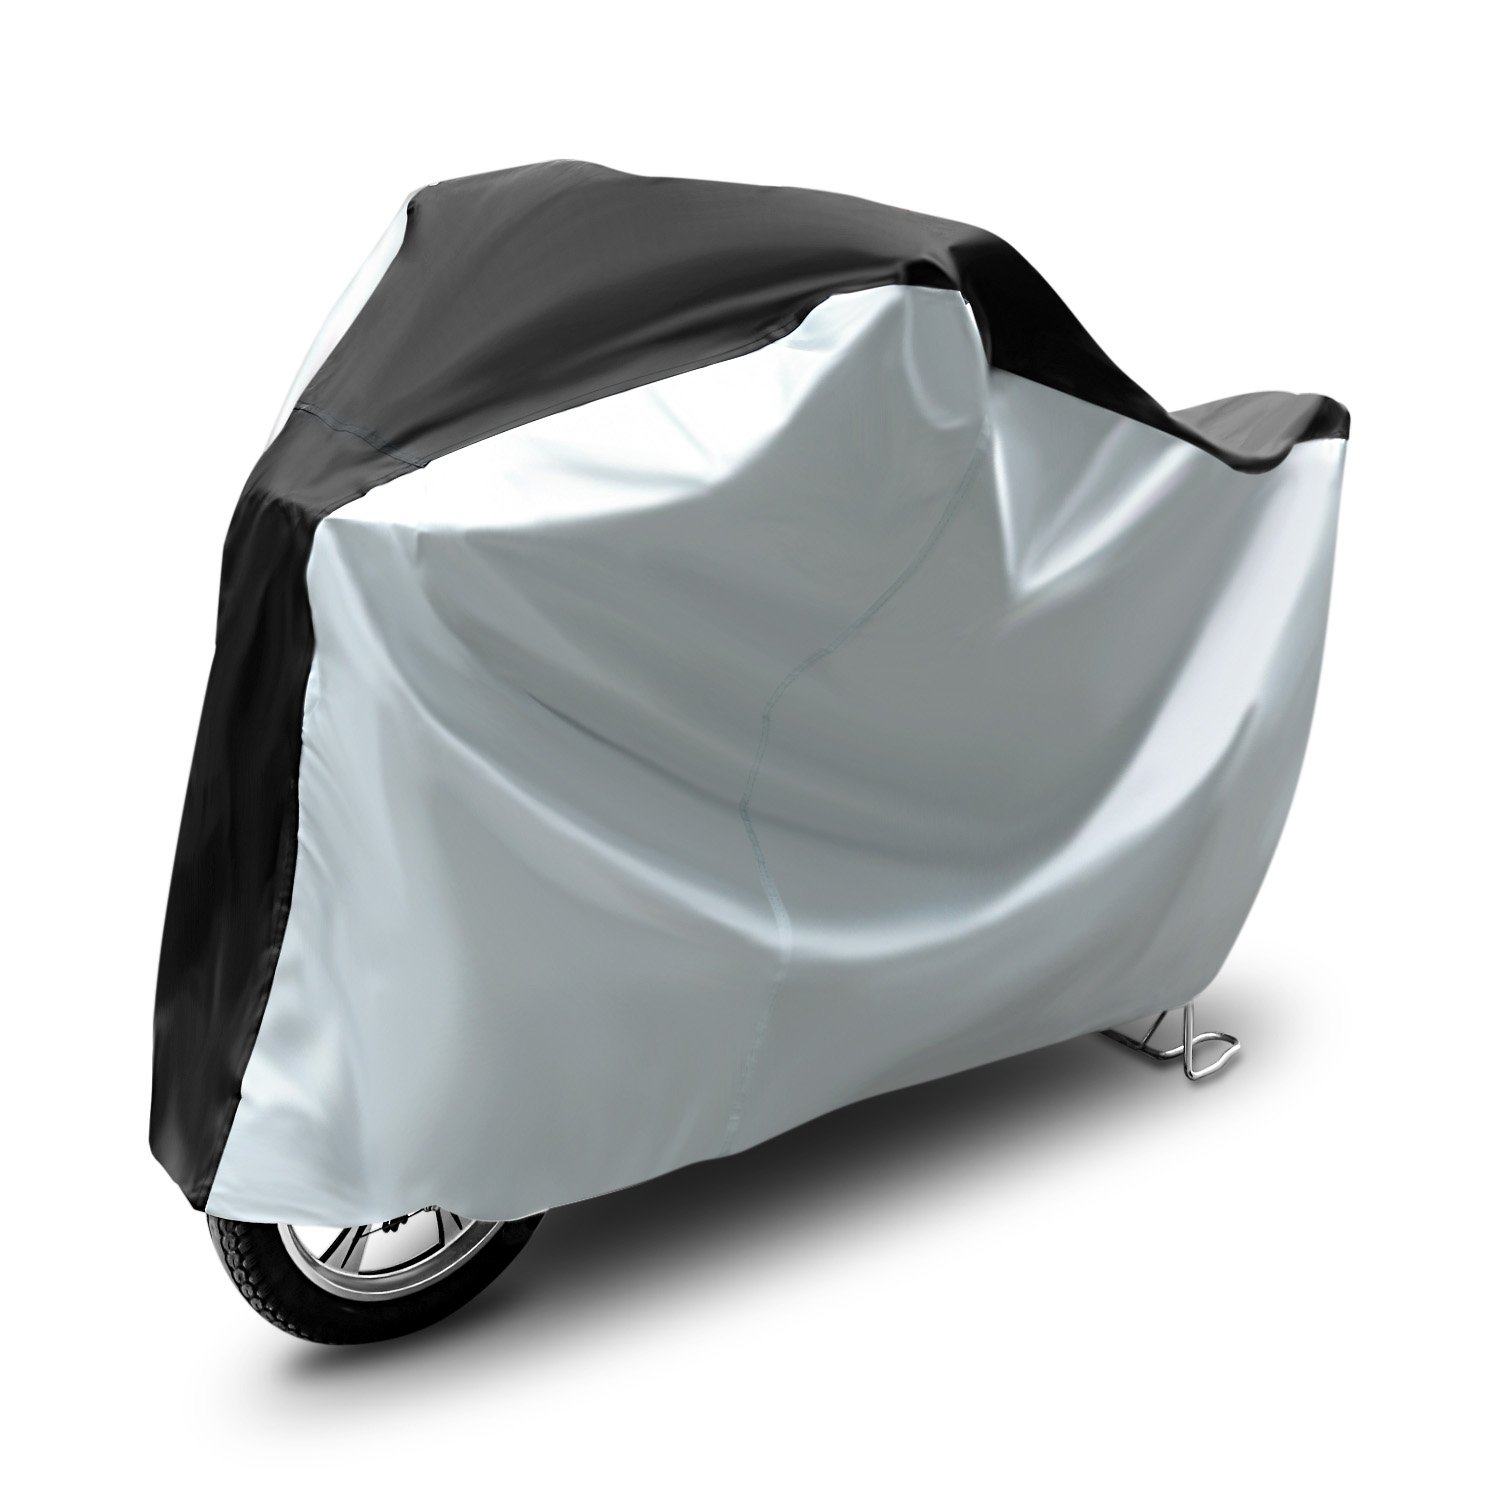 Exterior Covered Bike Storage : Bike cover waterproof outdoor bicycle storage for